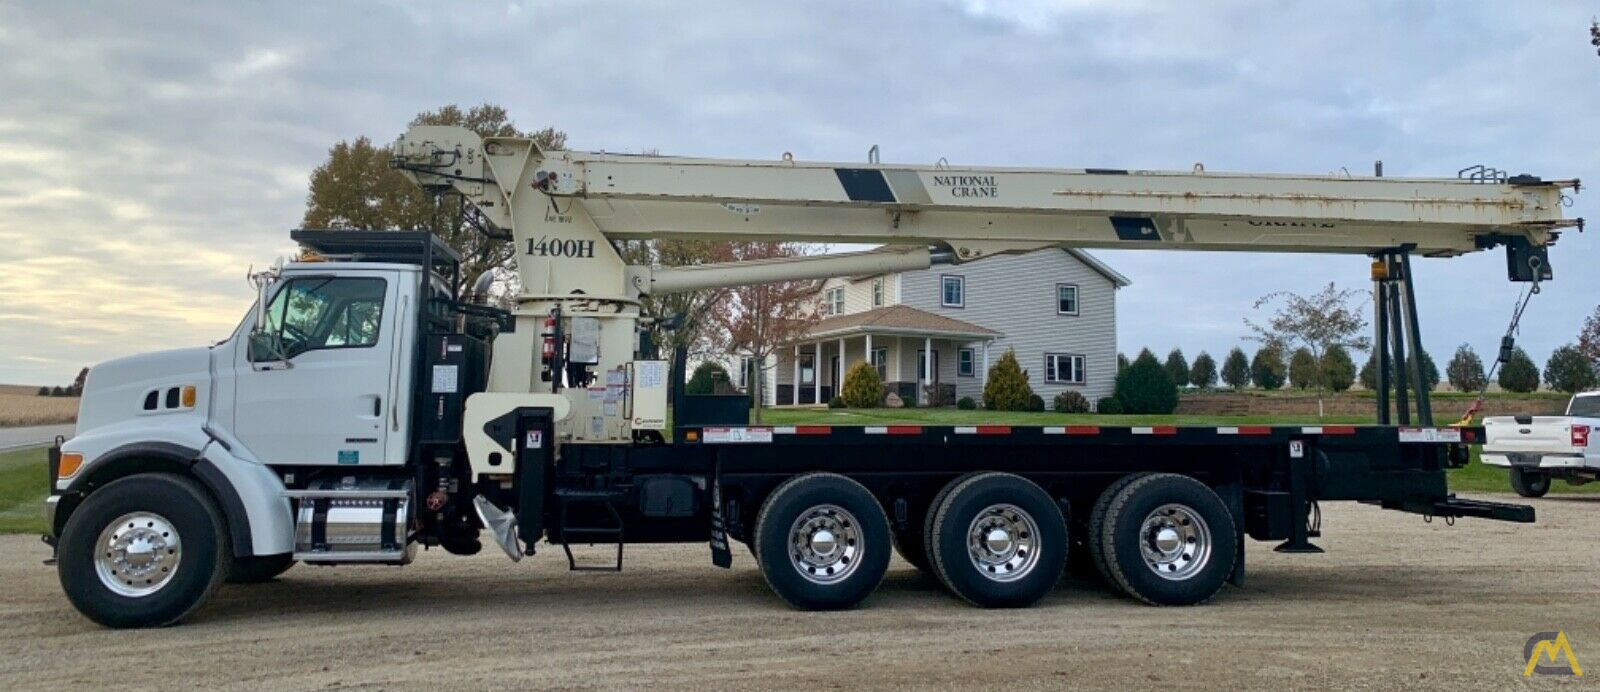 National Series Series 1400H Model 14127H 33-Ton Boom Truck Crane on Sterling L7500 1